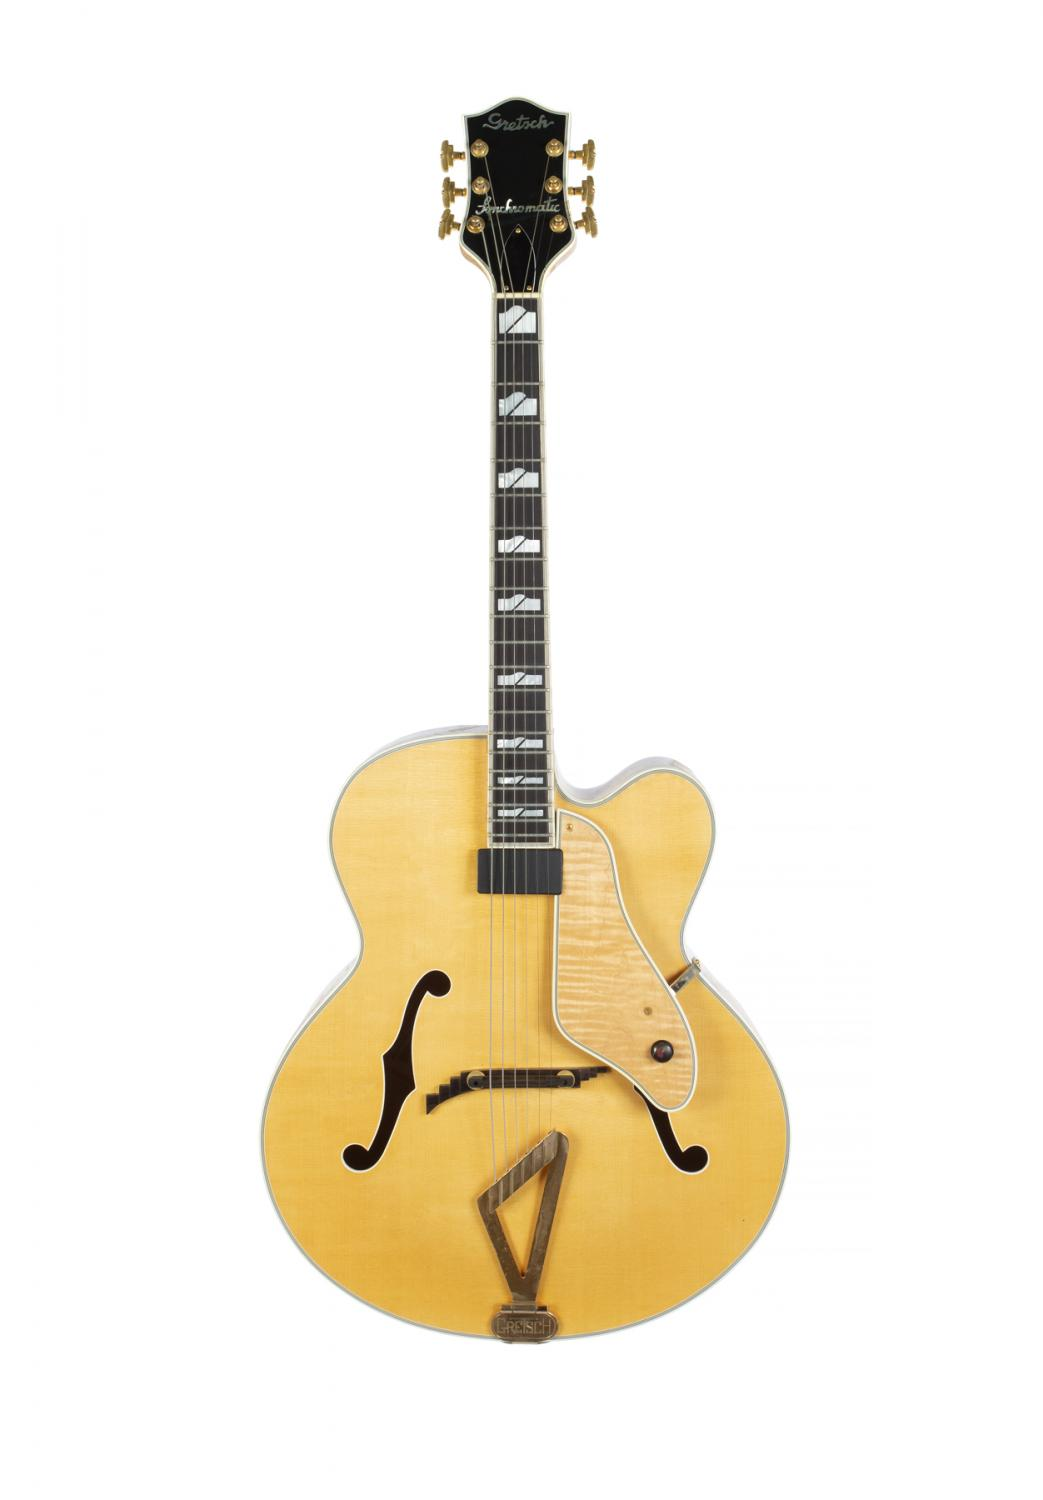 Do you dig Gretschs? Check out these.......-382811_0-jpg